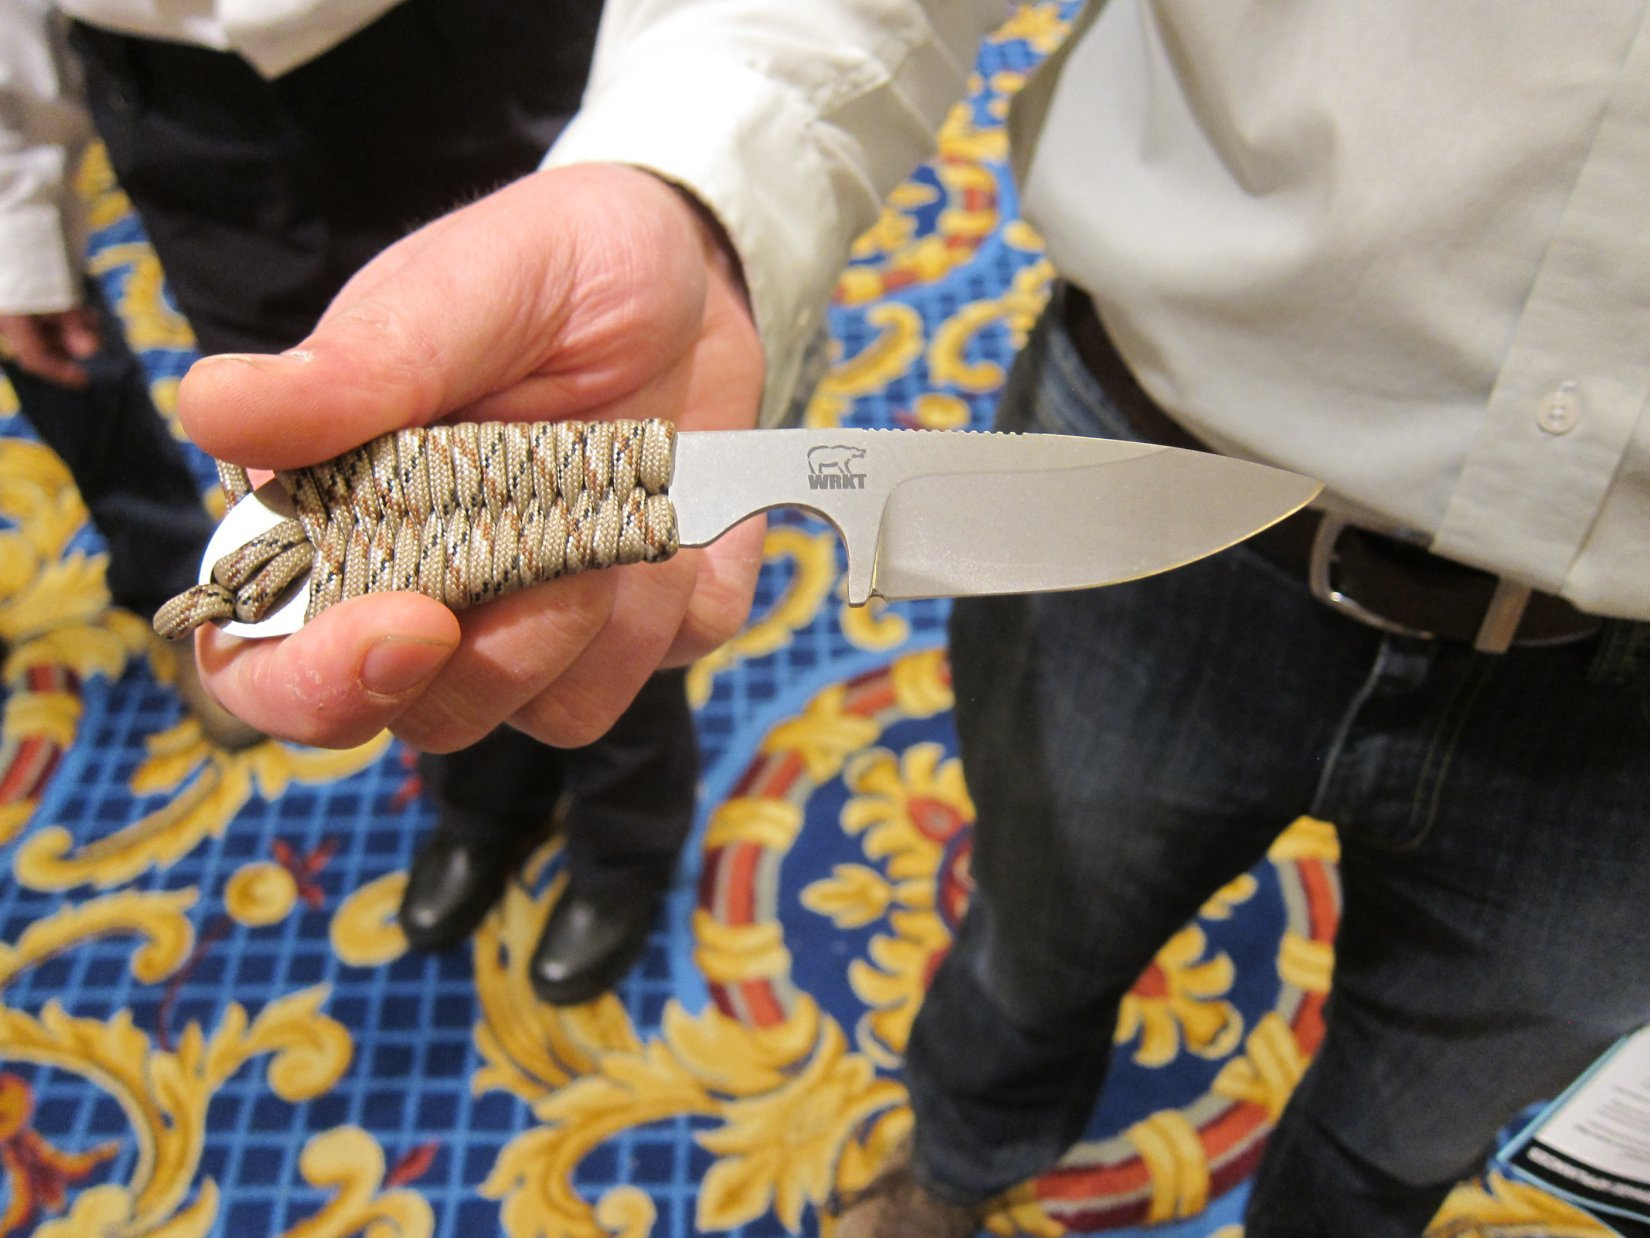 White River Knives (WRK) Backpacker Lightweight Hunting/Tactical Knife/Neck Knife at SHOT Show 2012